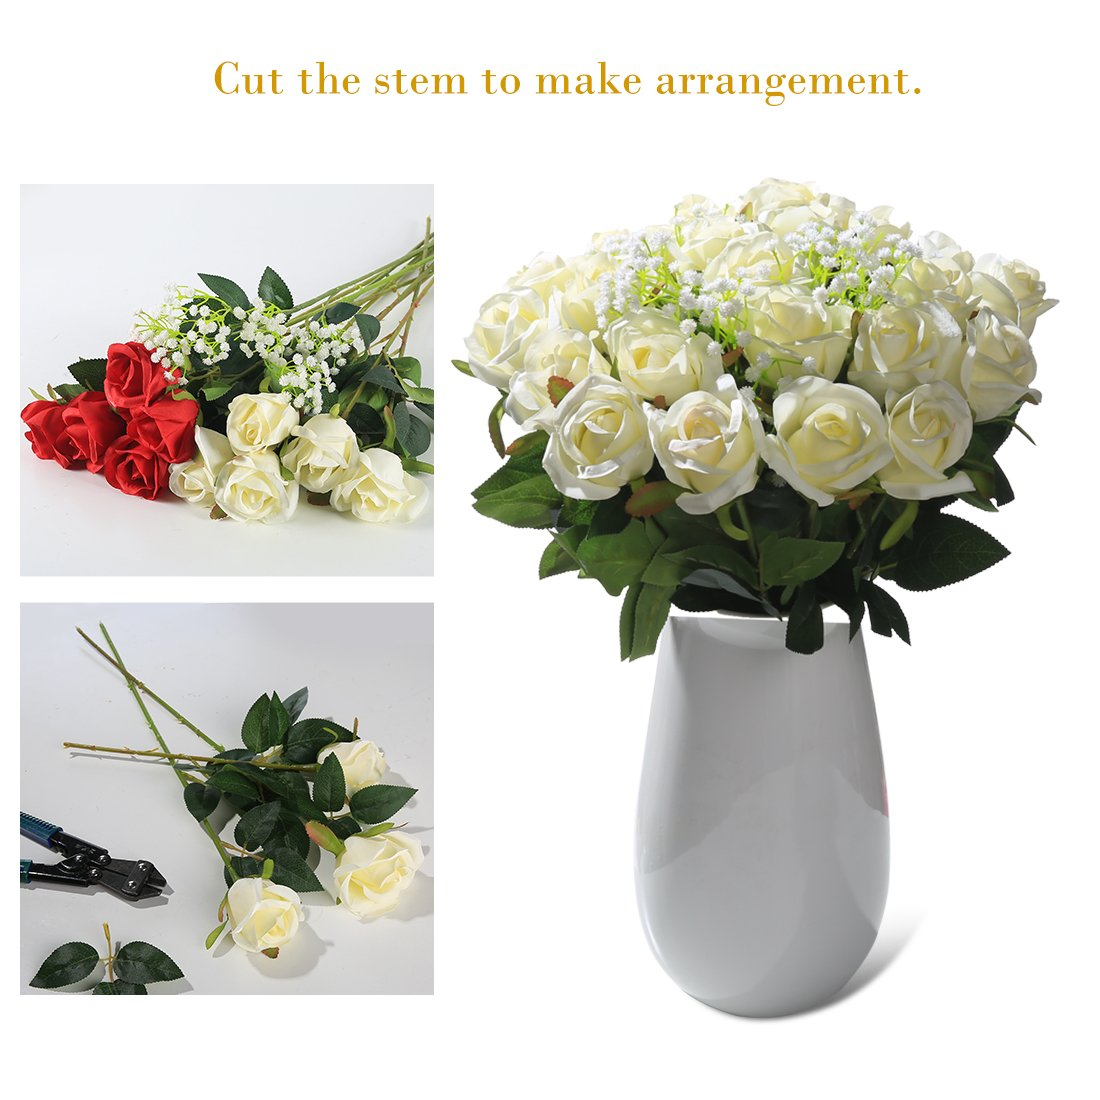 Veryhome Artificial Flowers Silk Roses Fake Bridal Wedding Bouquet for Home Garden Party Floral Decor 10 Pcs (White Straight stem)